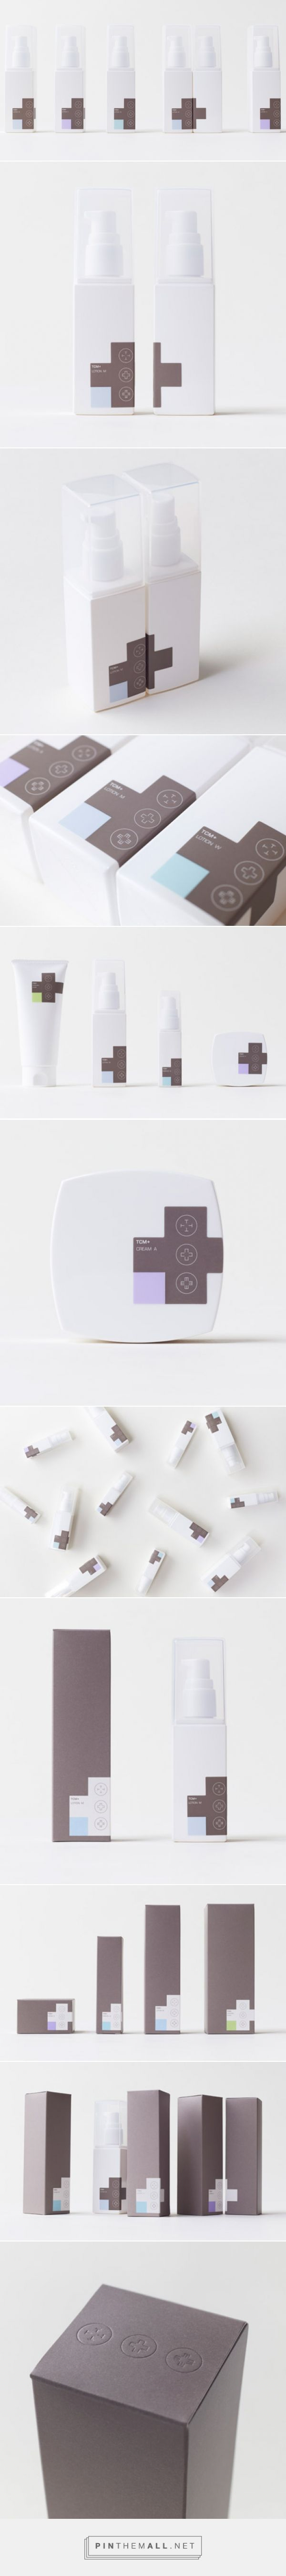 Nendo designs identity packaging for skincare based on Chinese medicine curated by Packaging Diva PD. Simplicity in branding at it's best.